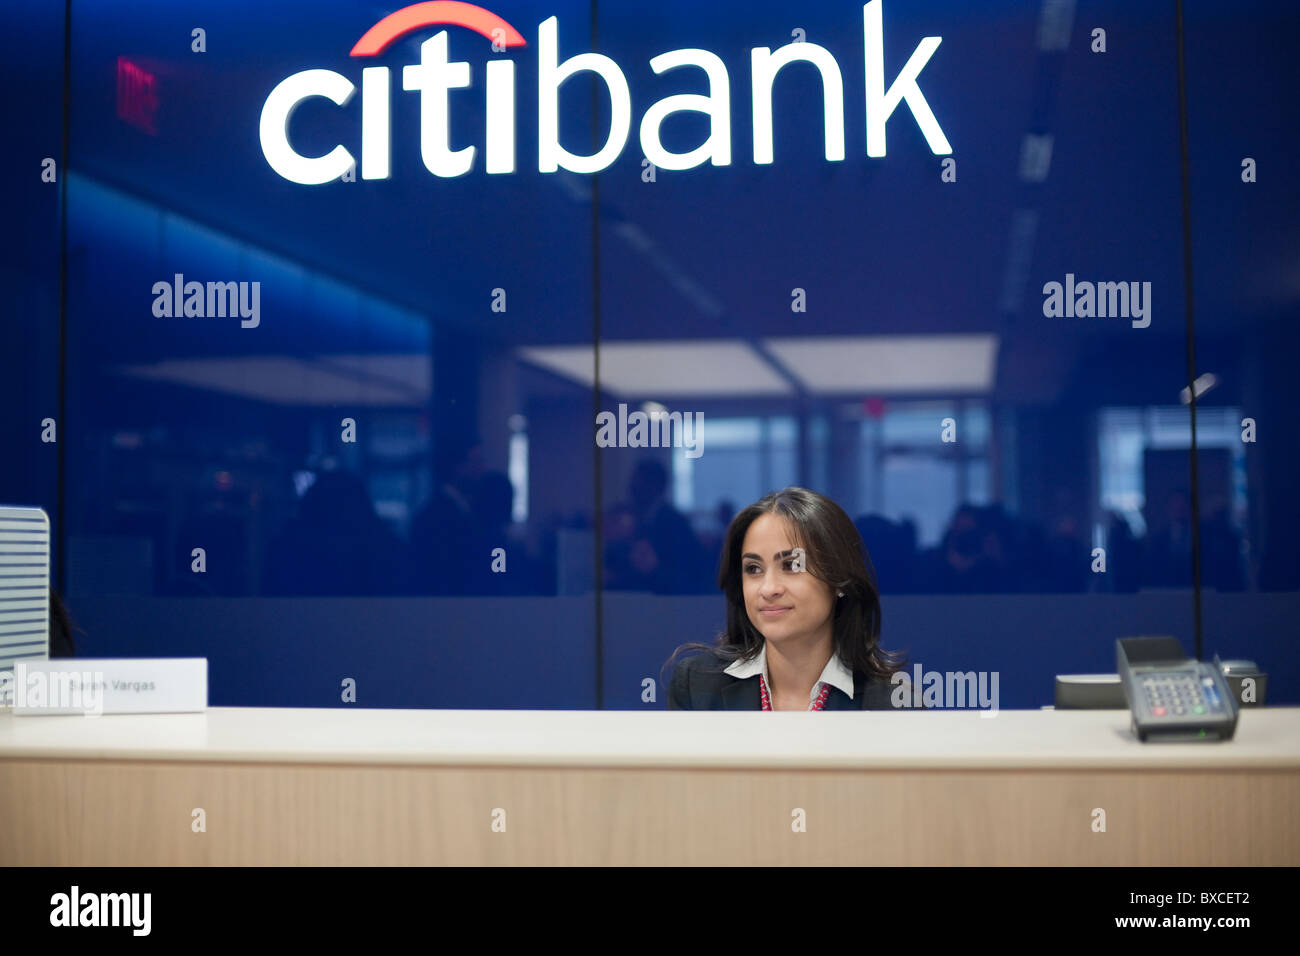 teller stations in the citibank new flagship high tech branch in the union square neighborhood of new york